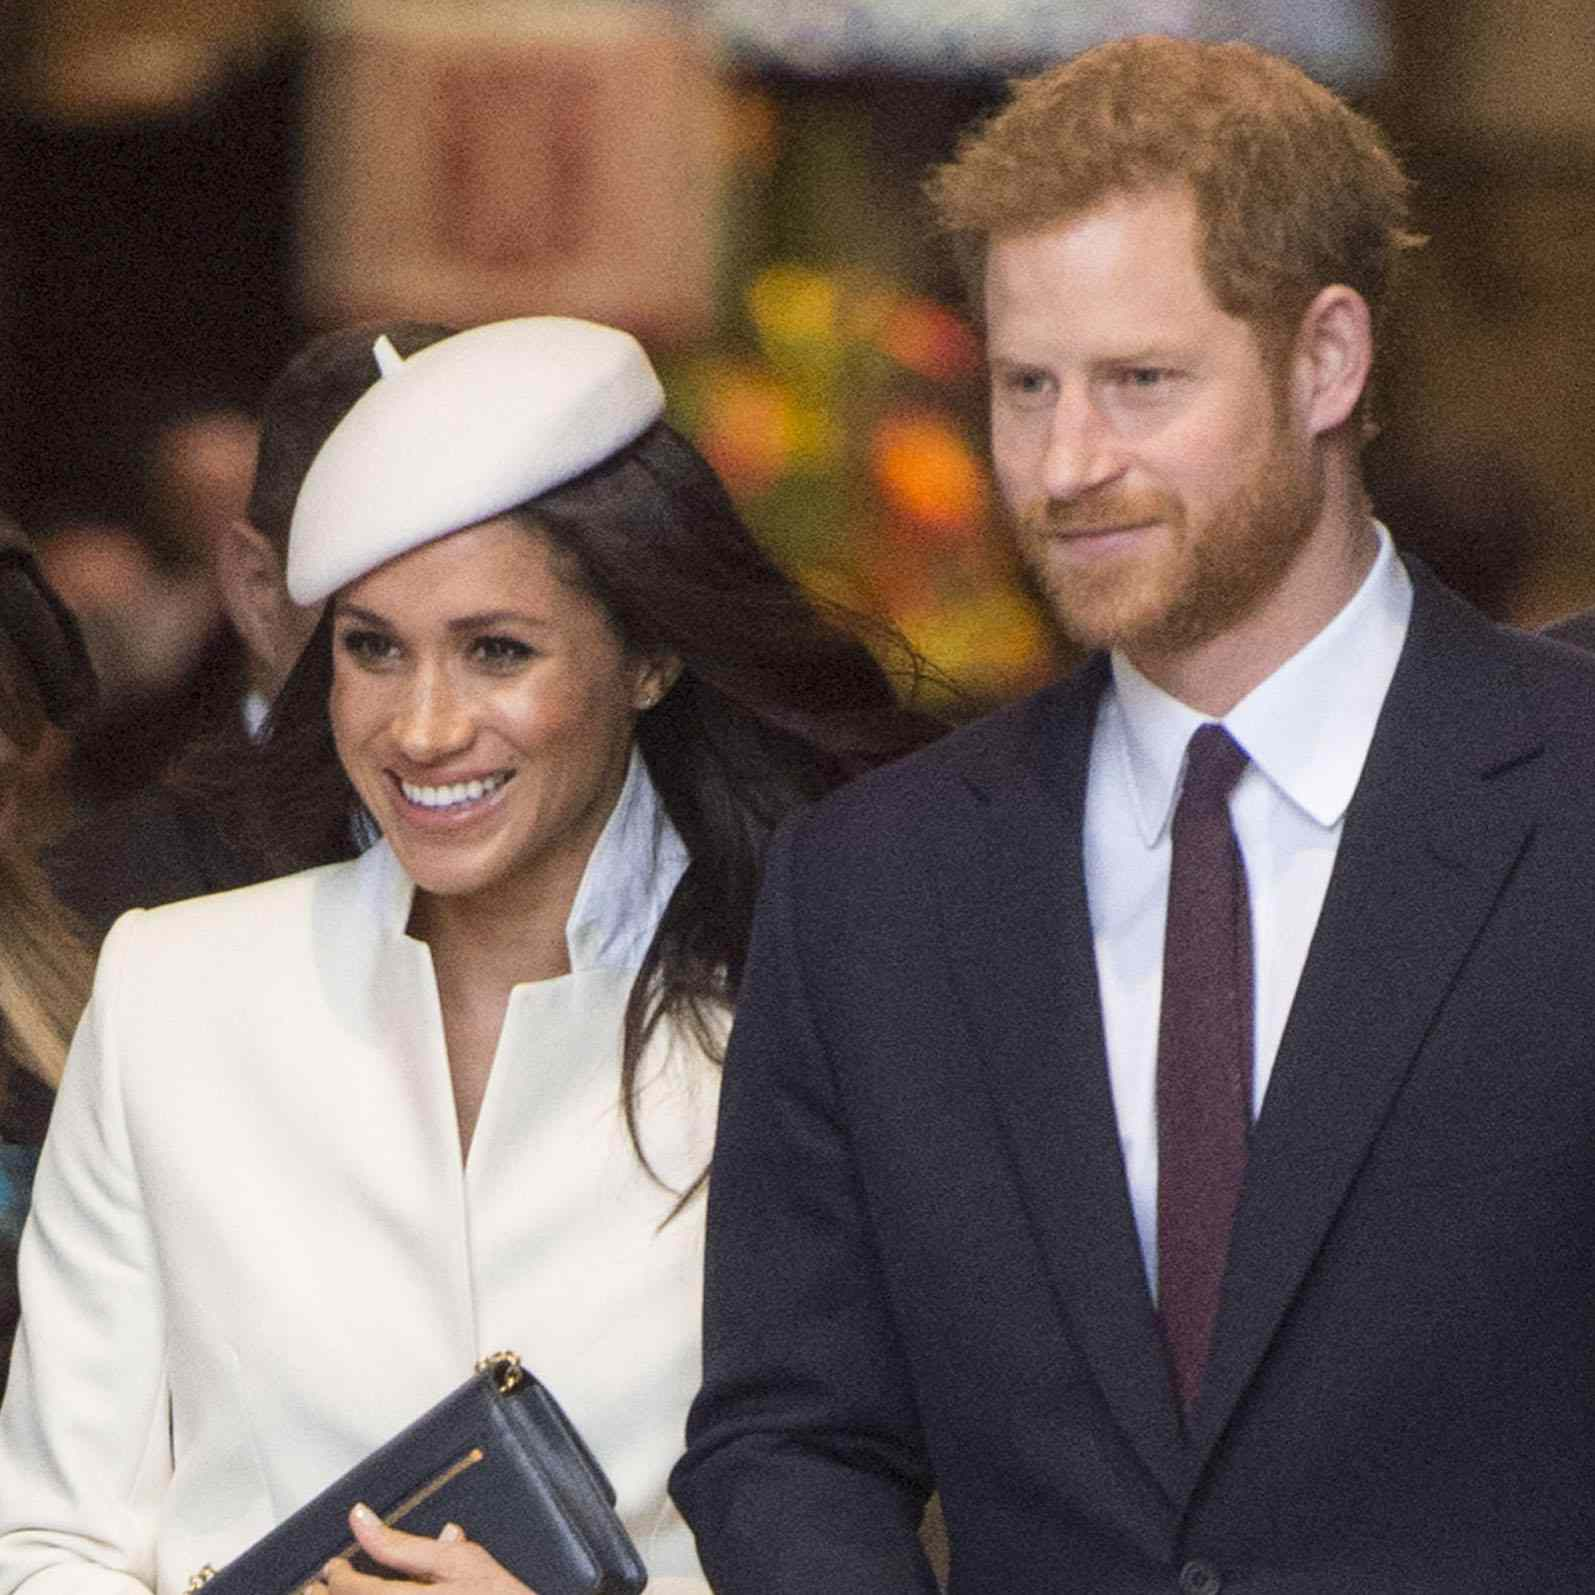 Royal Wedding Watch.Royal Wedding Prep The Best Movies And Tv Shows To Watch Before The